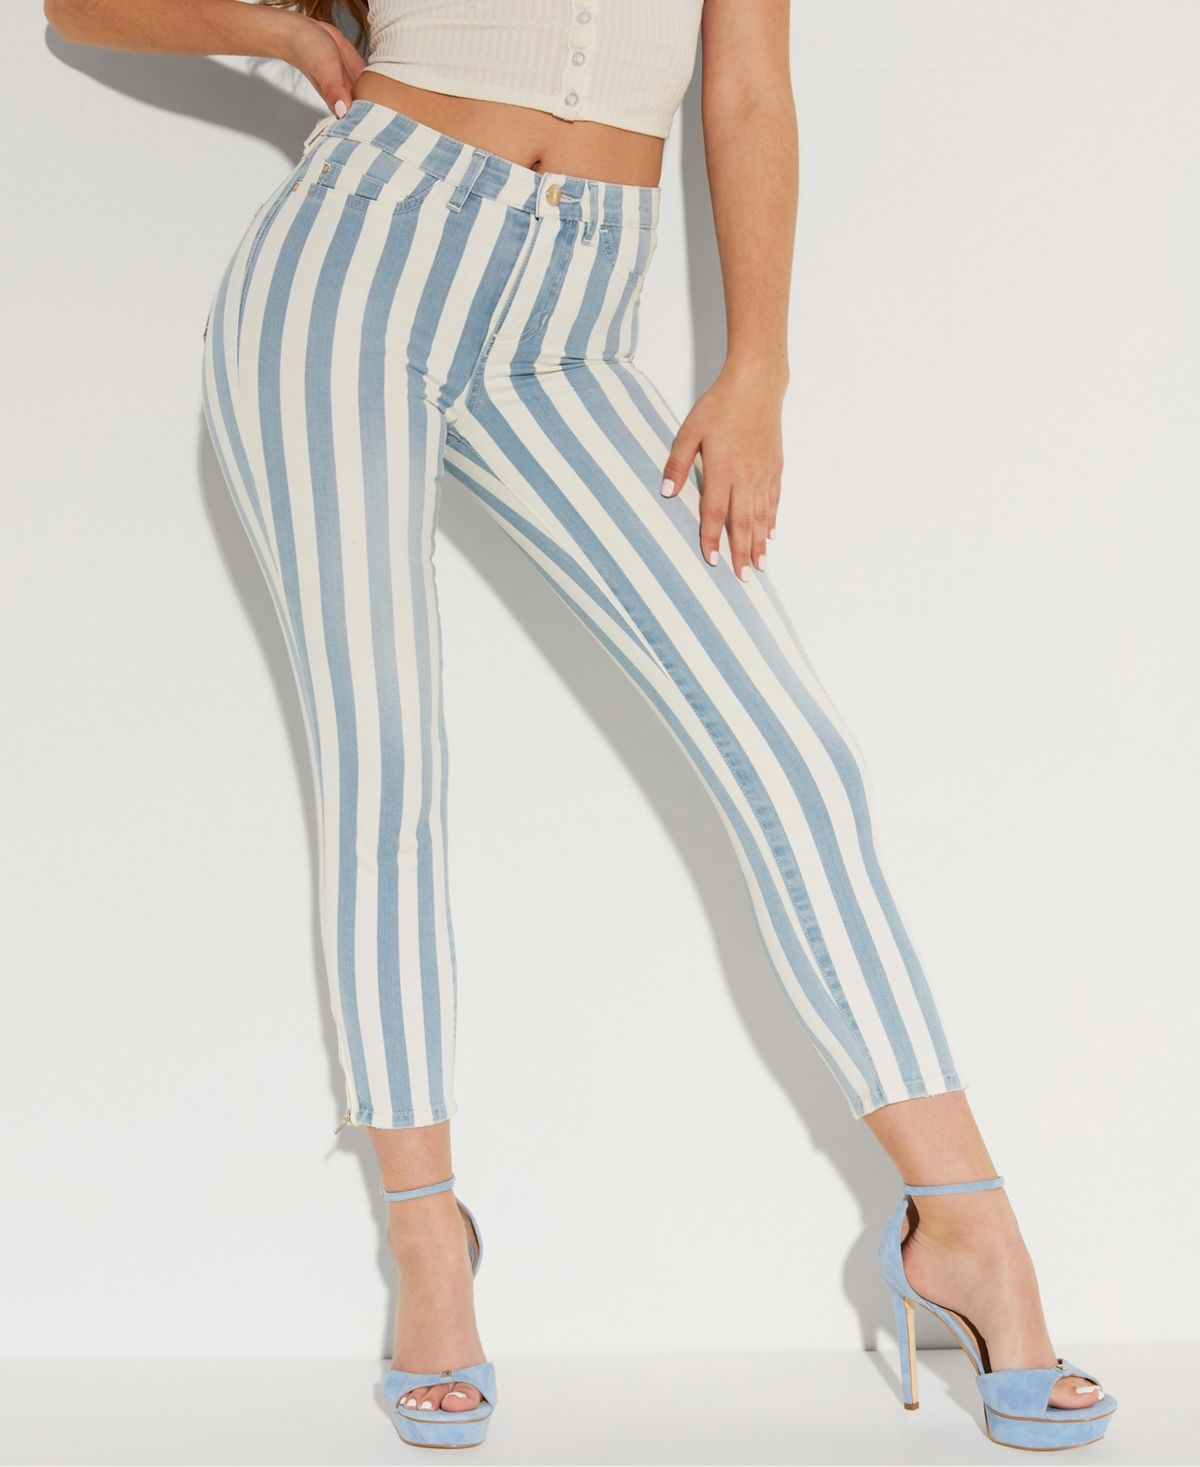 No matter what your day has in store, you can amplify your style with Guess' 1981 striped skinny jeans.